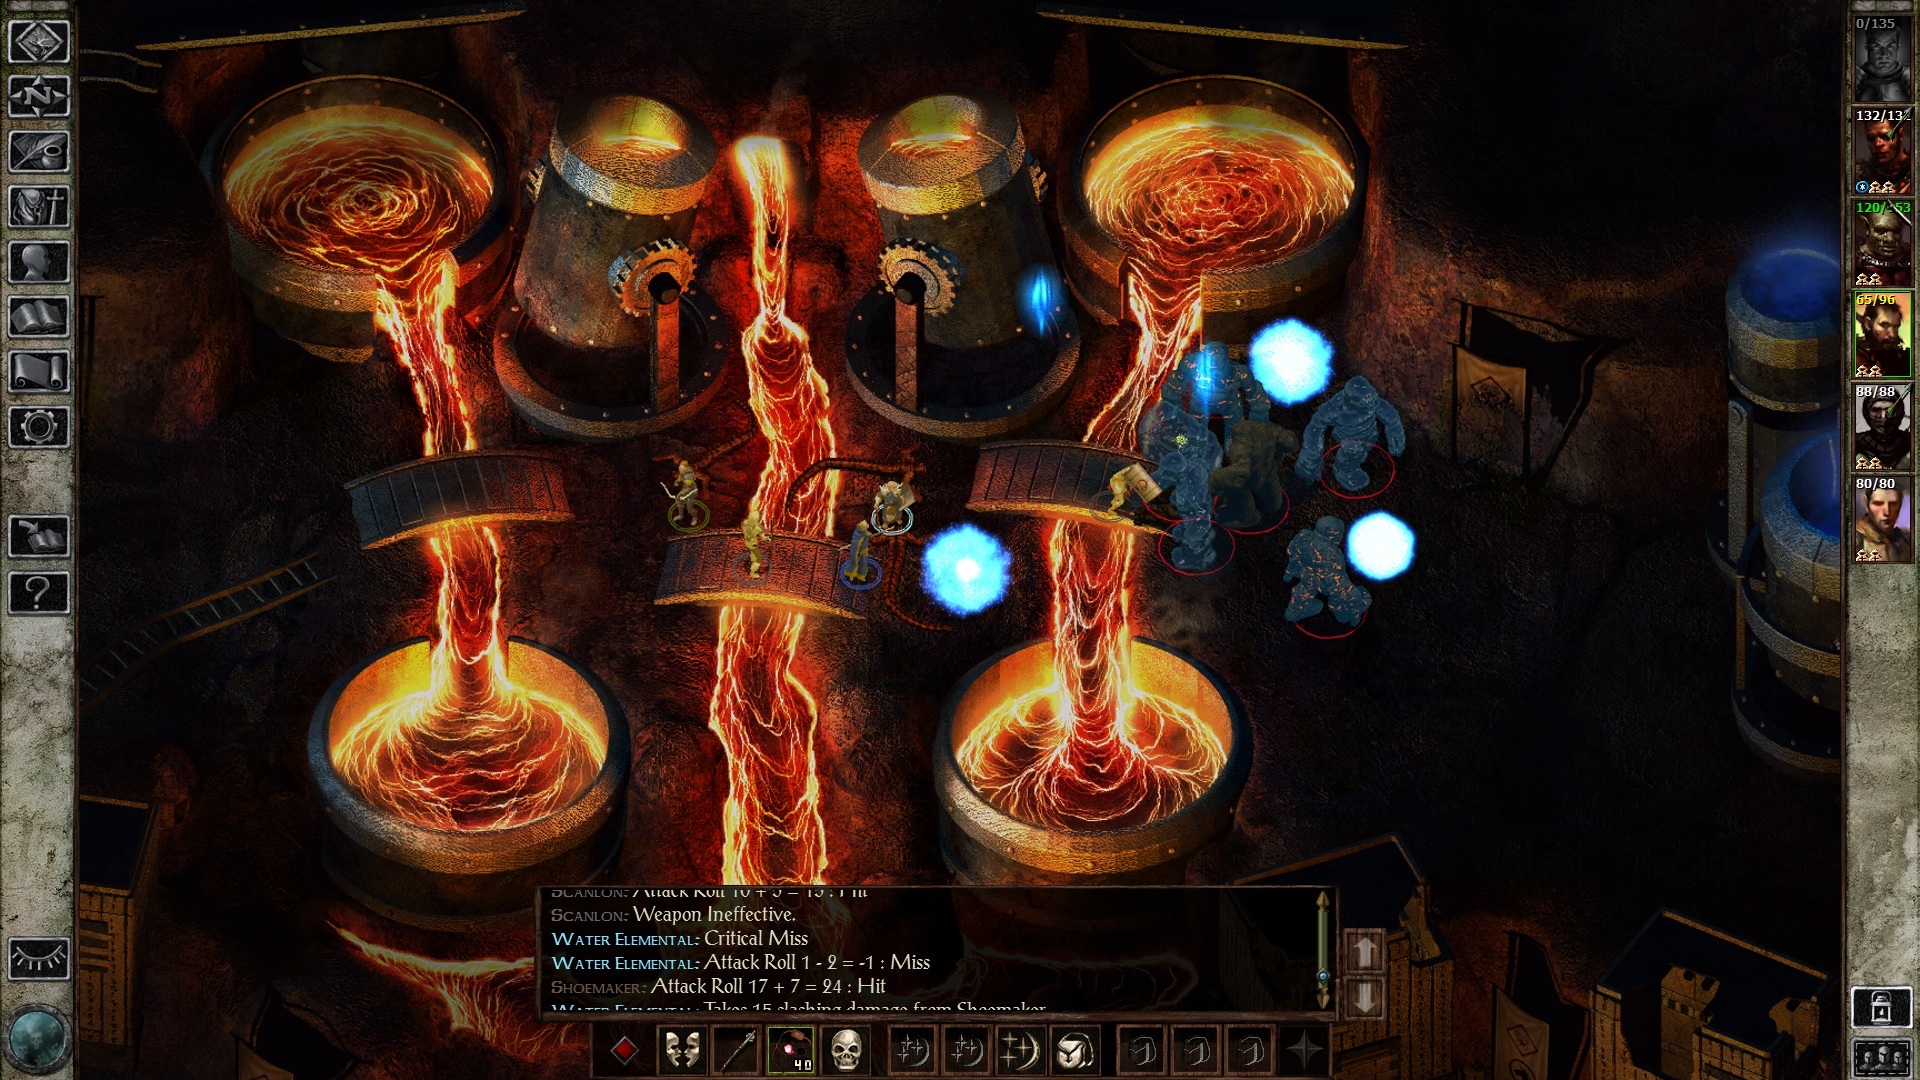 Classic Dungeons & Dragons RPG Icewind Dale is getting an 'enhanced edition' for iOS